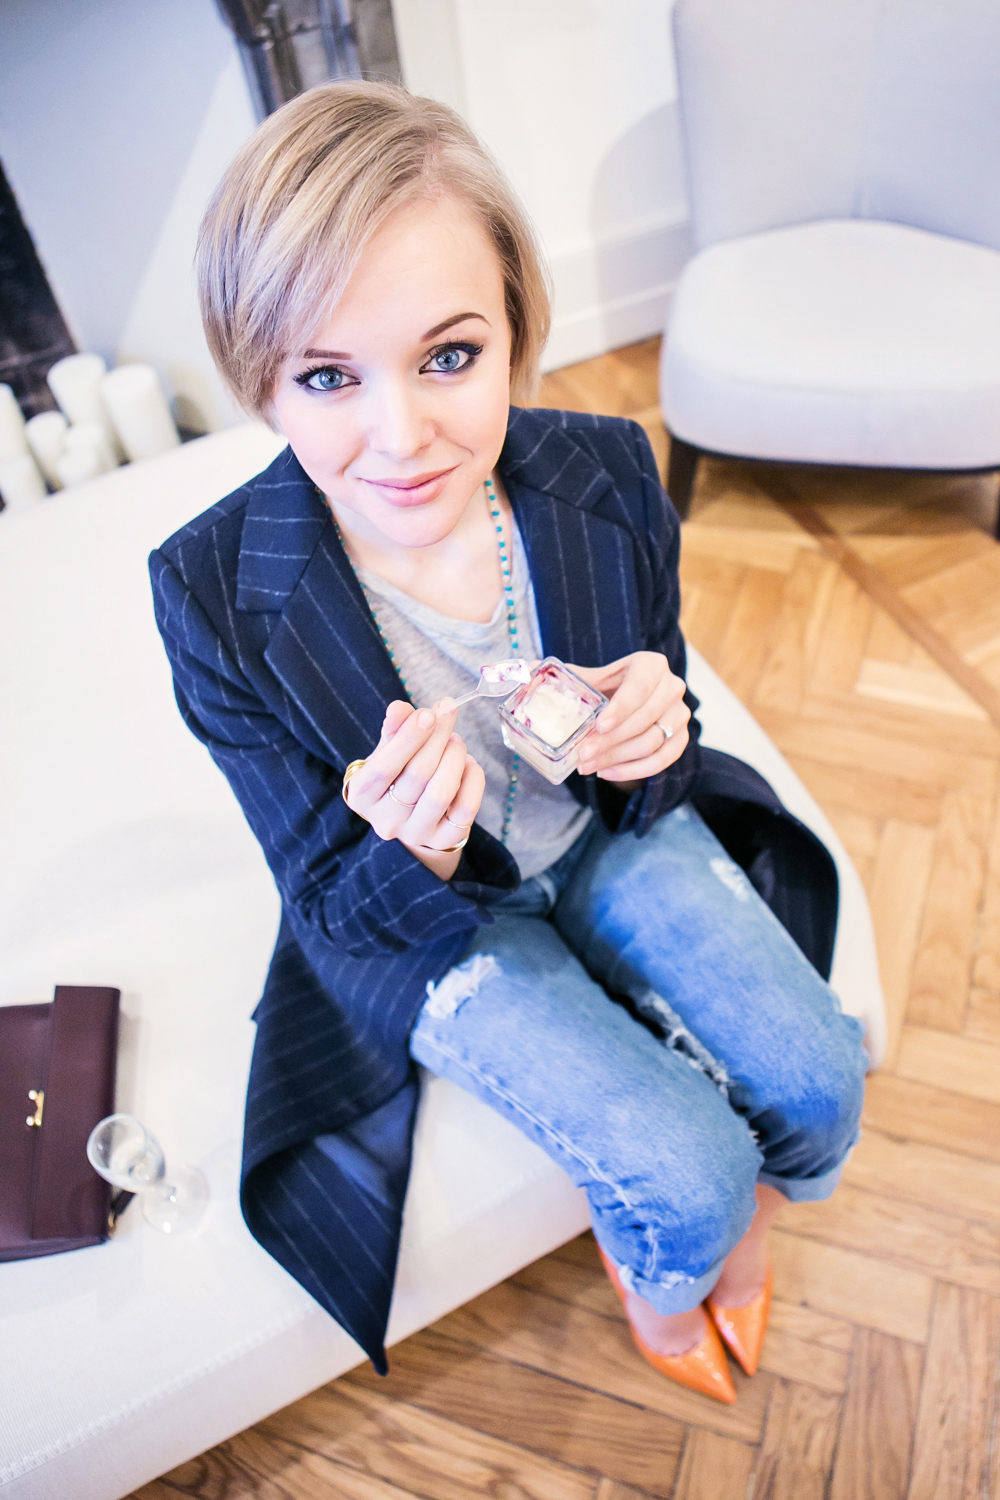 1thecablook darya kamalova russian italian fashion blogger blonde short hair pixie cut street style milan fashion week mfw aw14 15 ports show afterdrk first row zara coat casadei heels marni clutch malo presentation obika bar milano-14